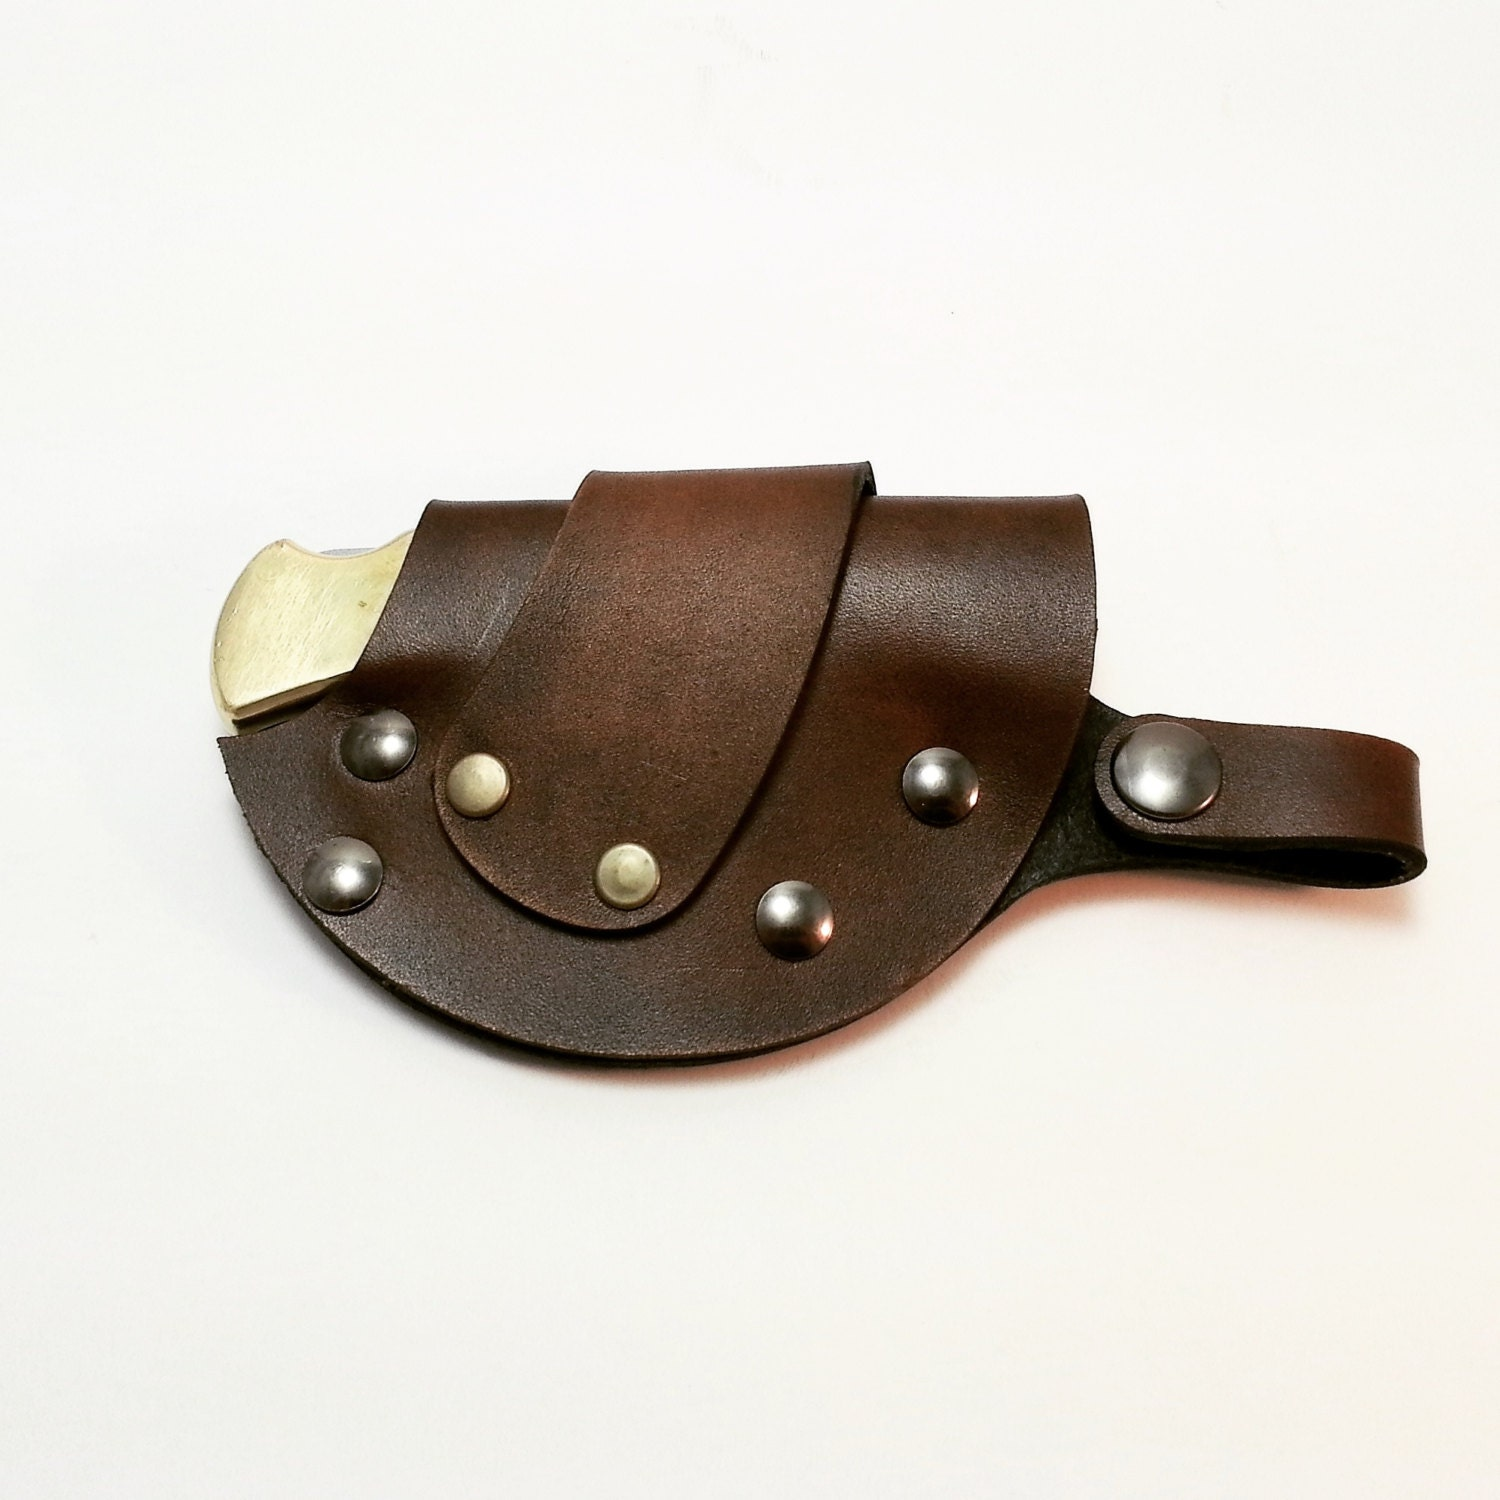 Buck 110 Quick Draw Knife Sheath Hand Made in the U.S.A.